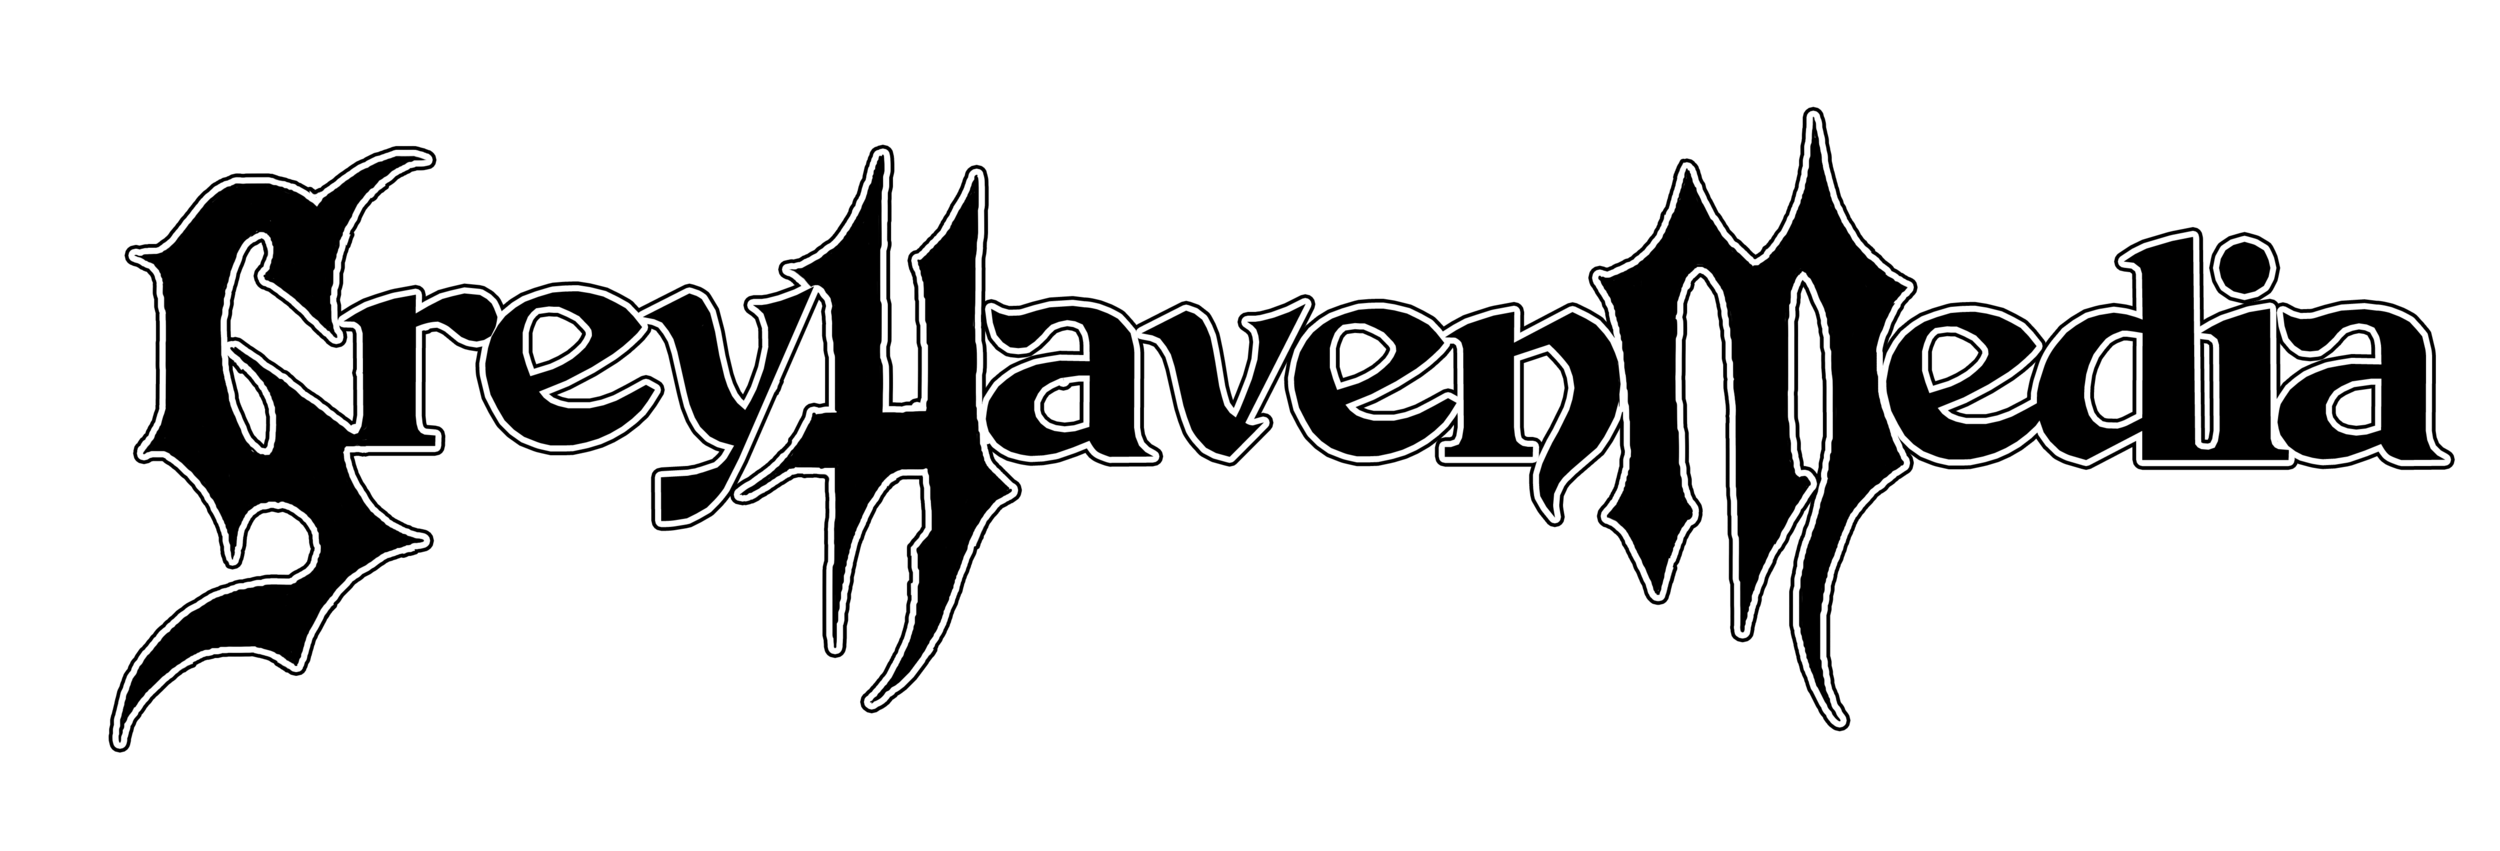 Grey Haven Media Logo B/W Outline